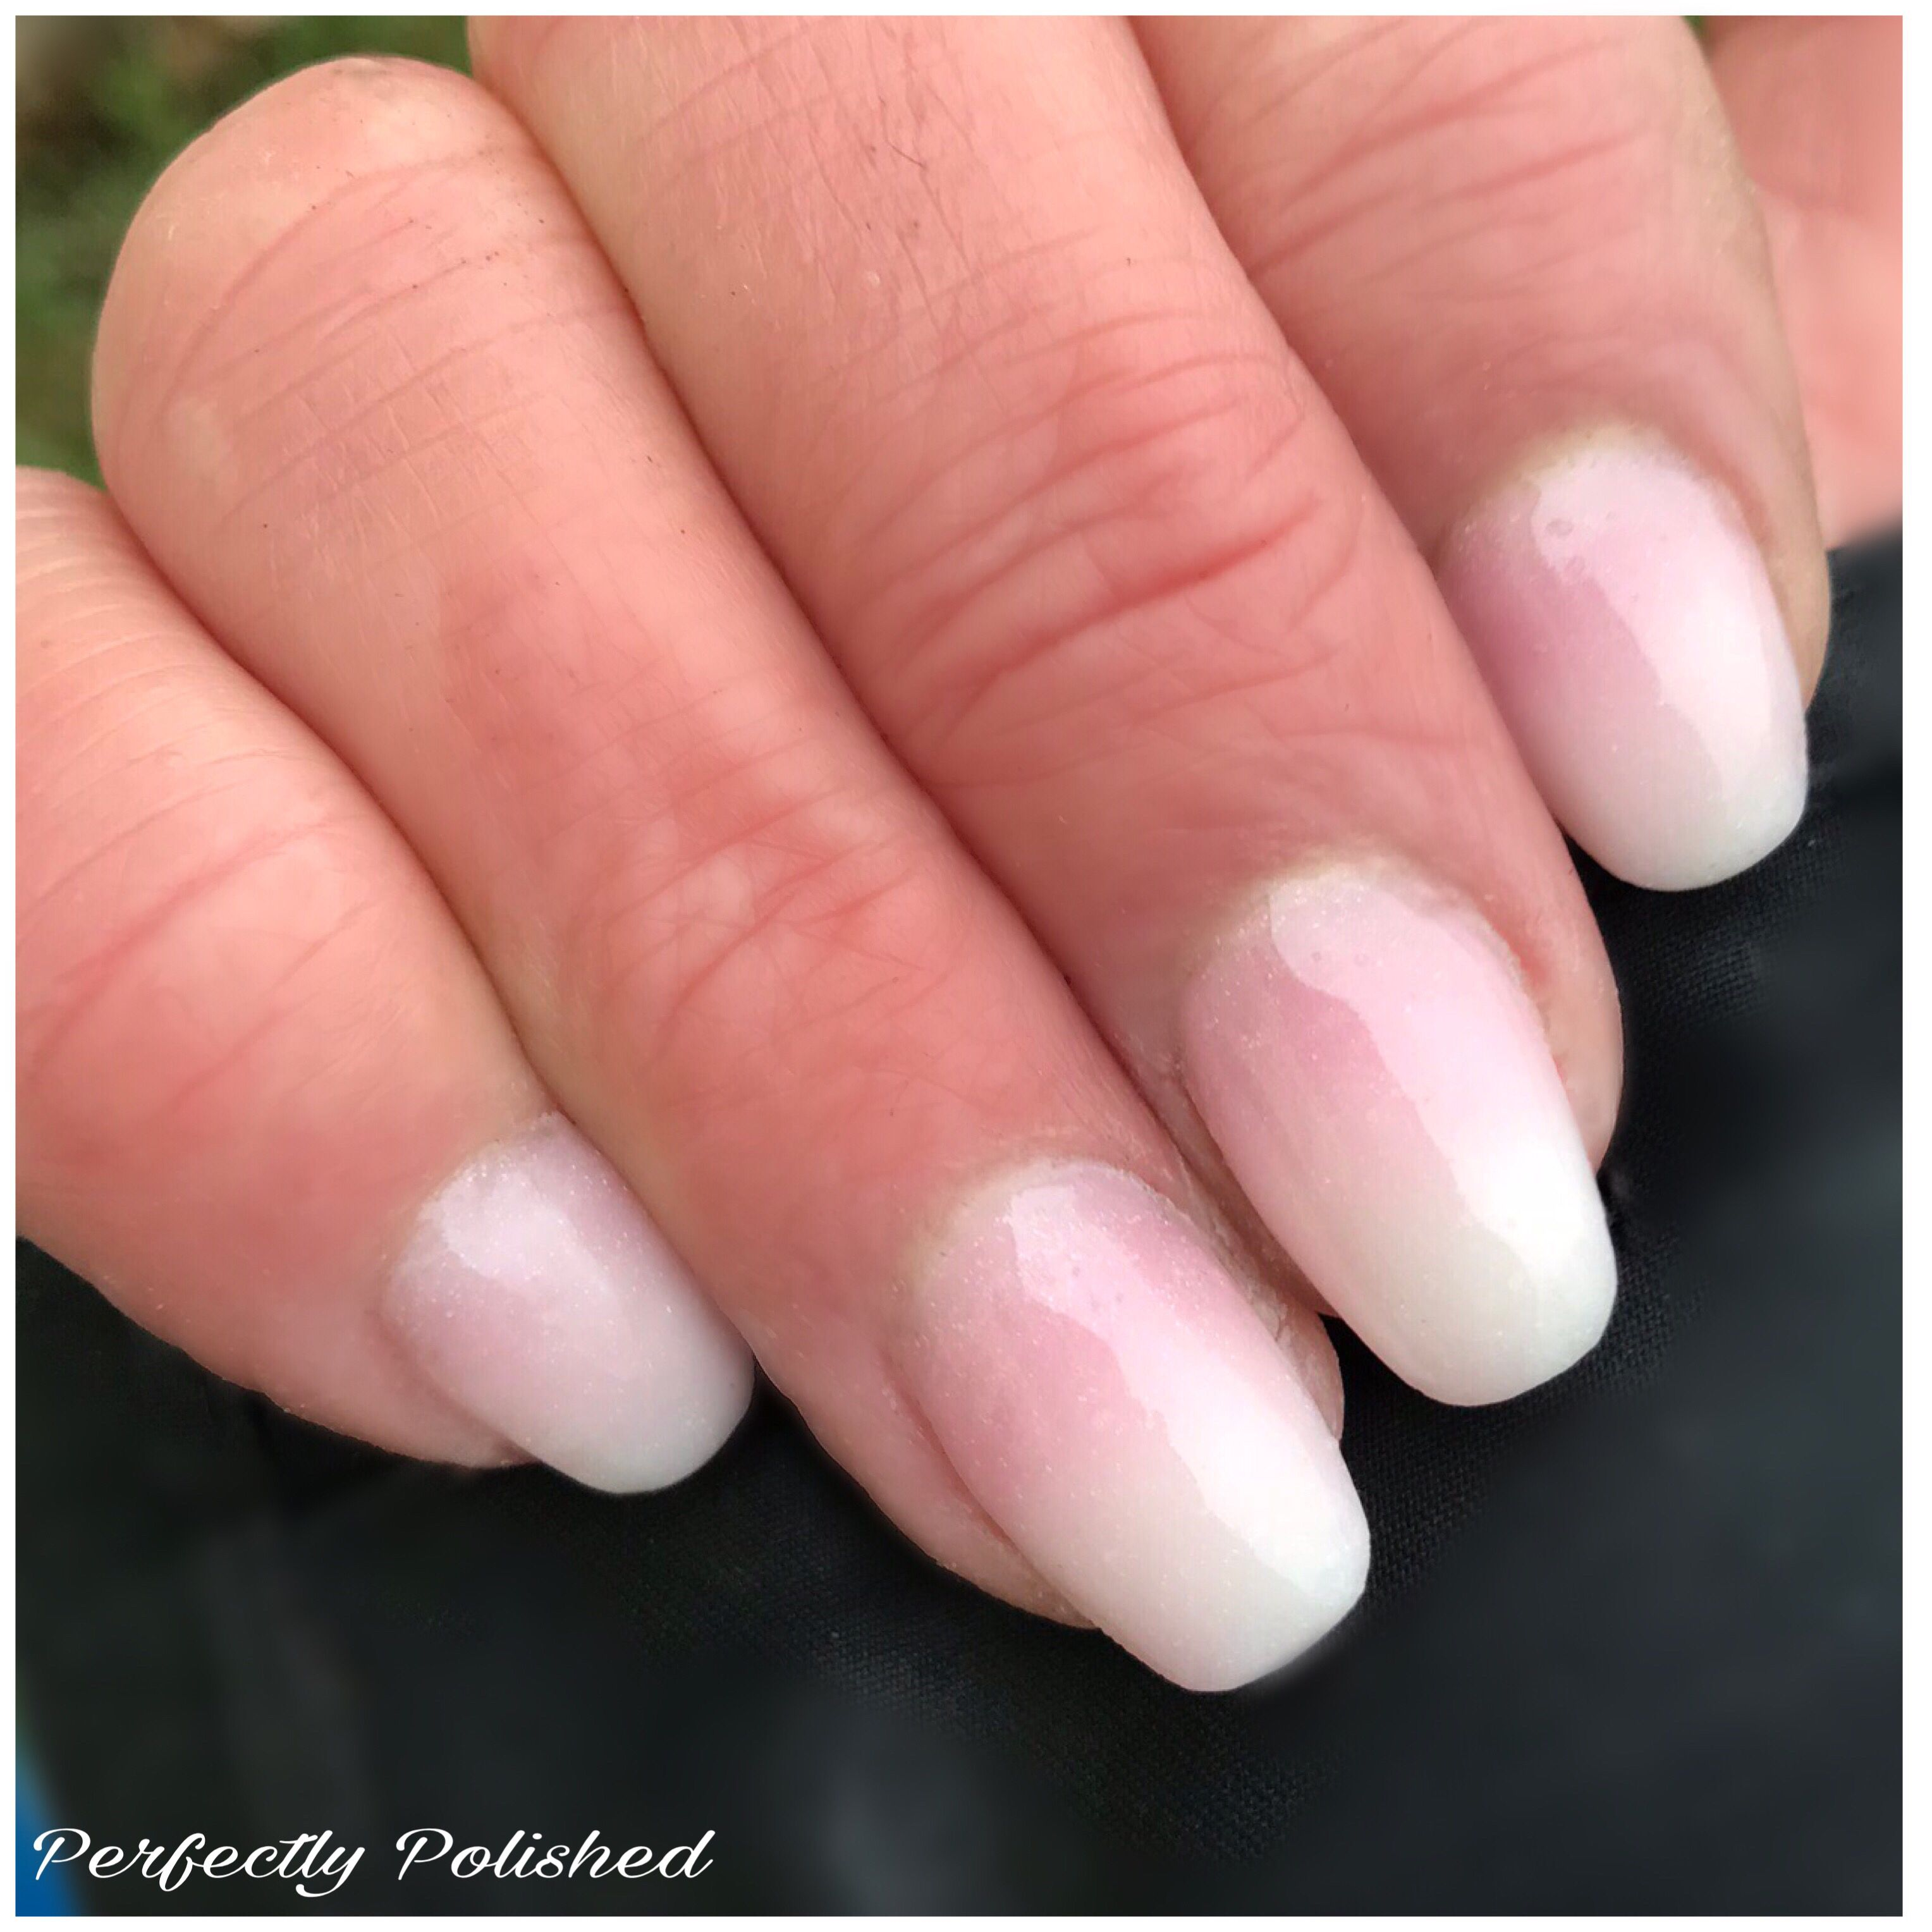 Baby Boomer Nails Using Nail Puttie Acrygel From Femmefatalenails